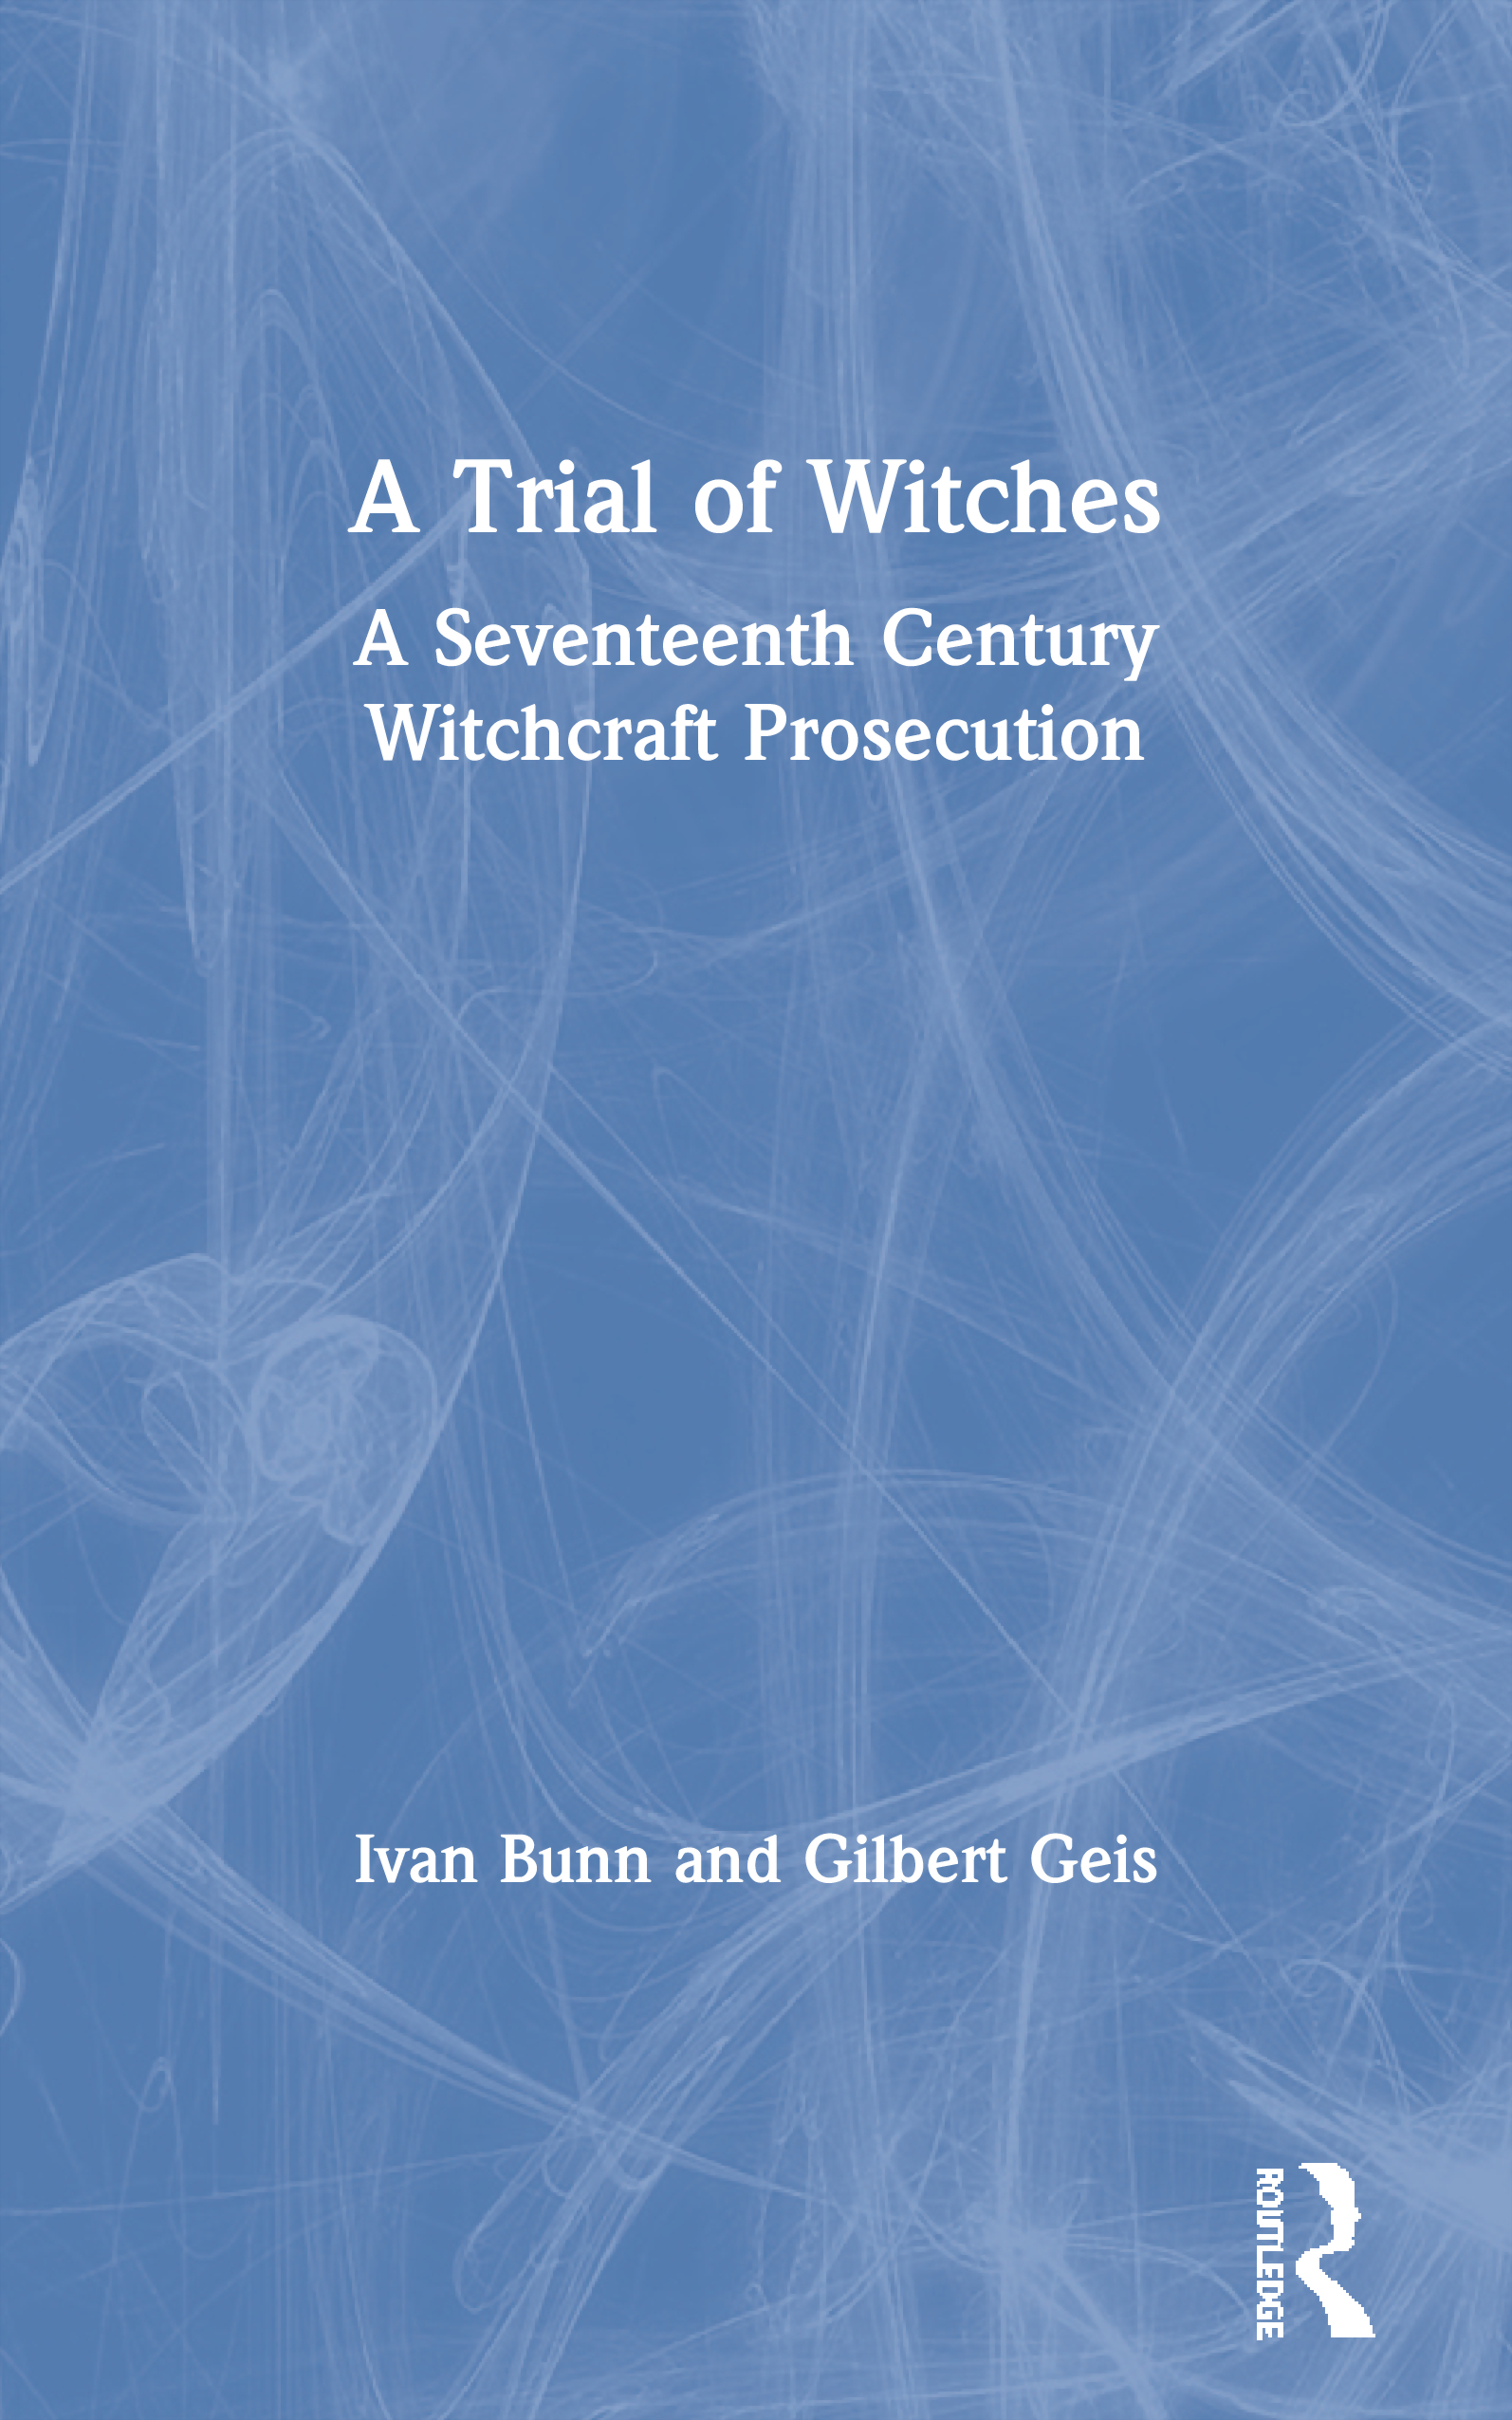 A Trial of Witches